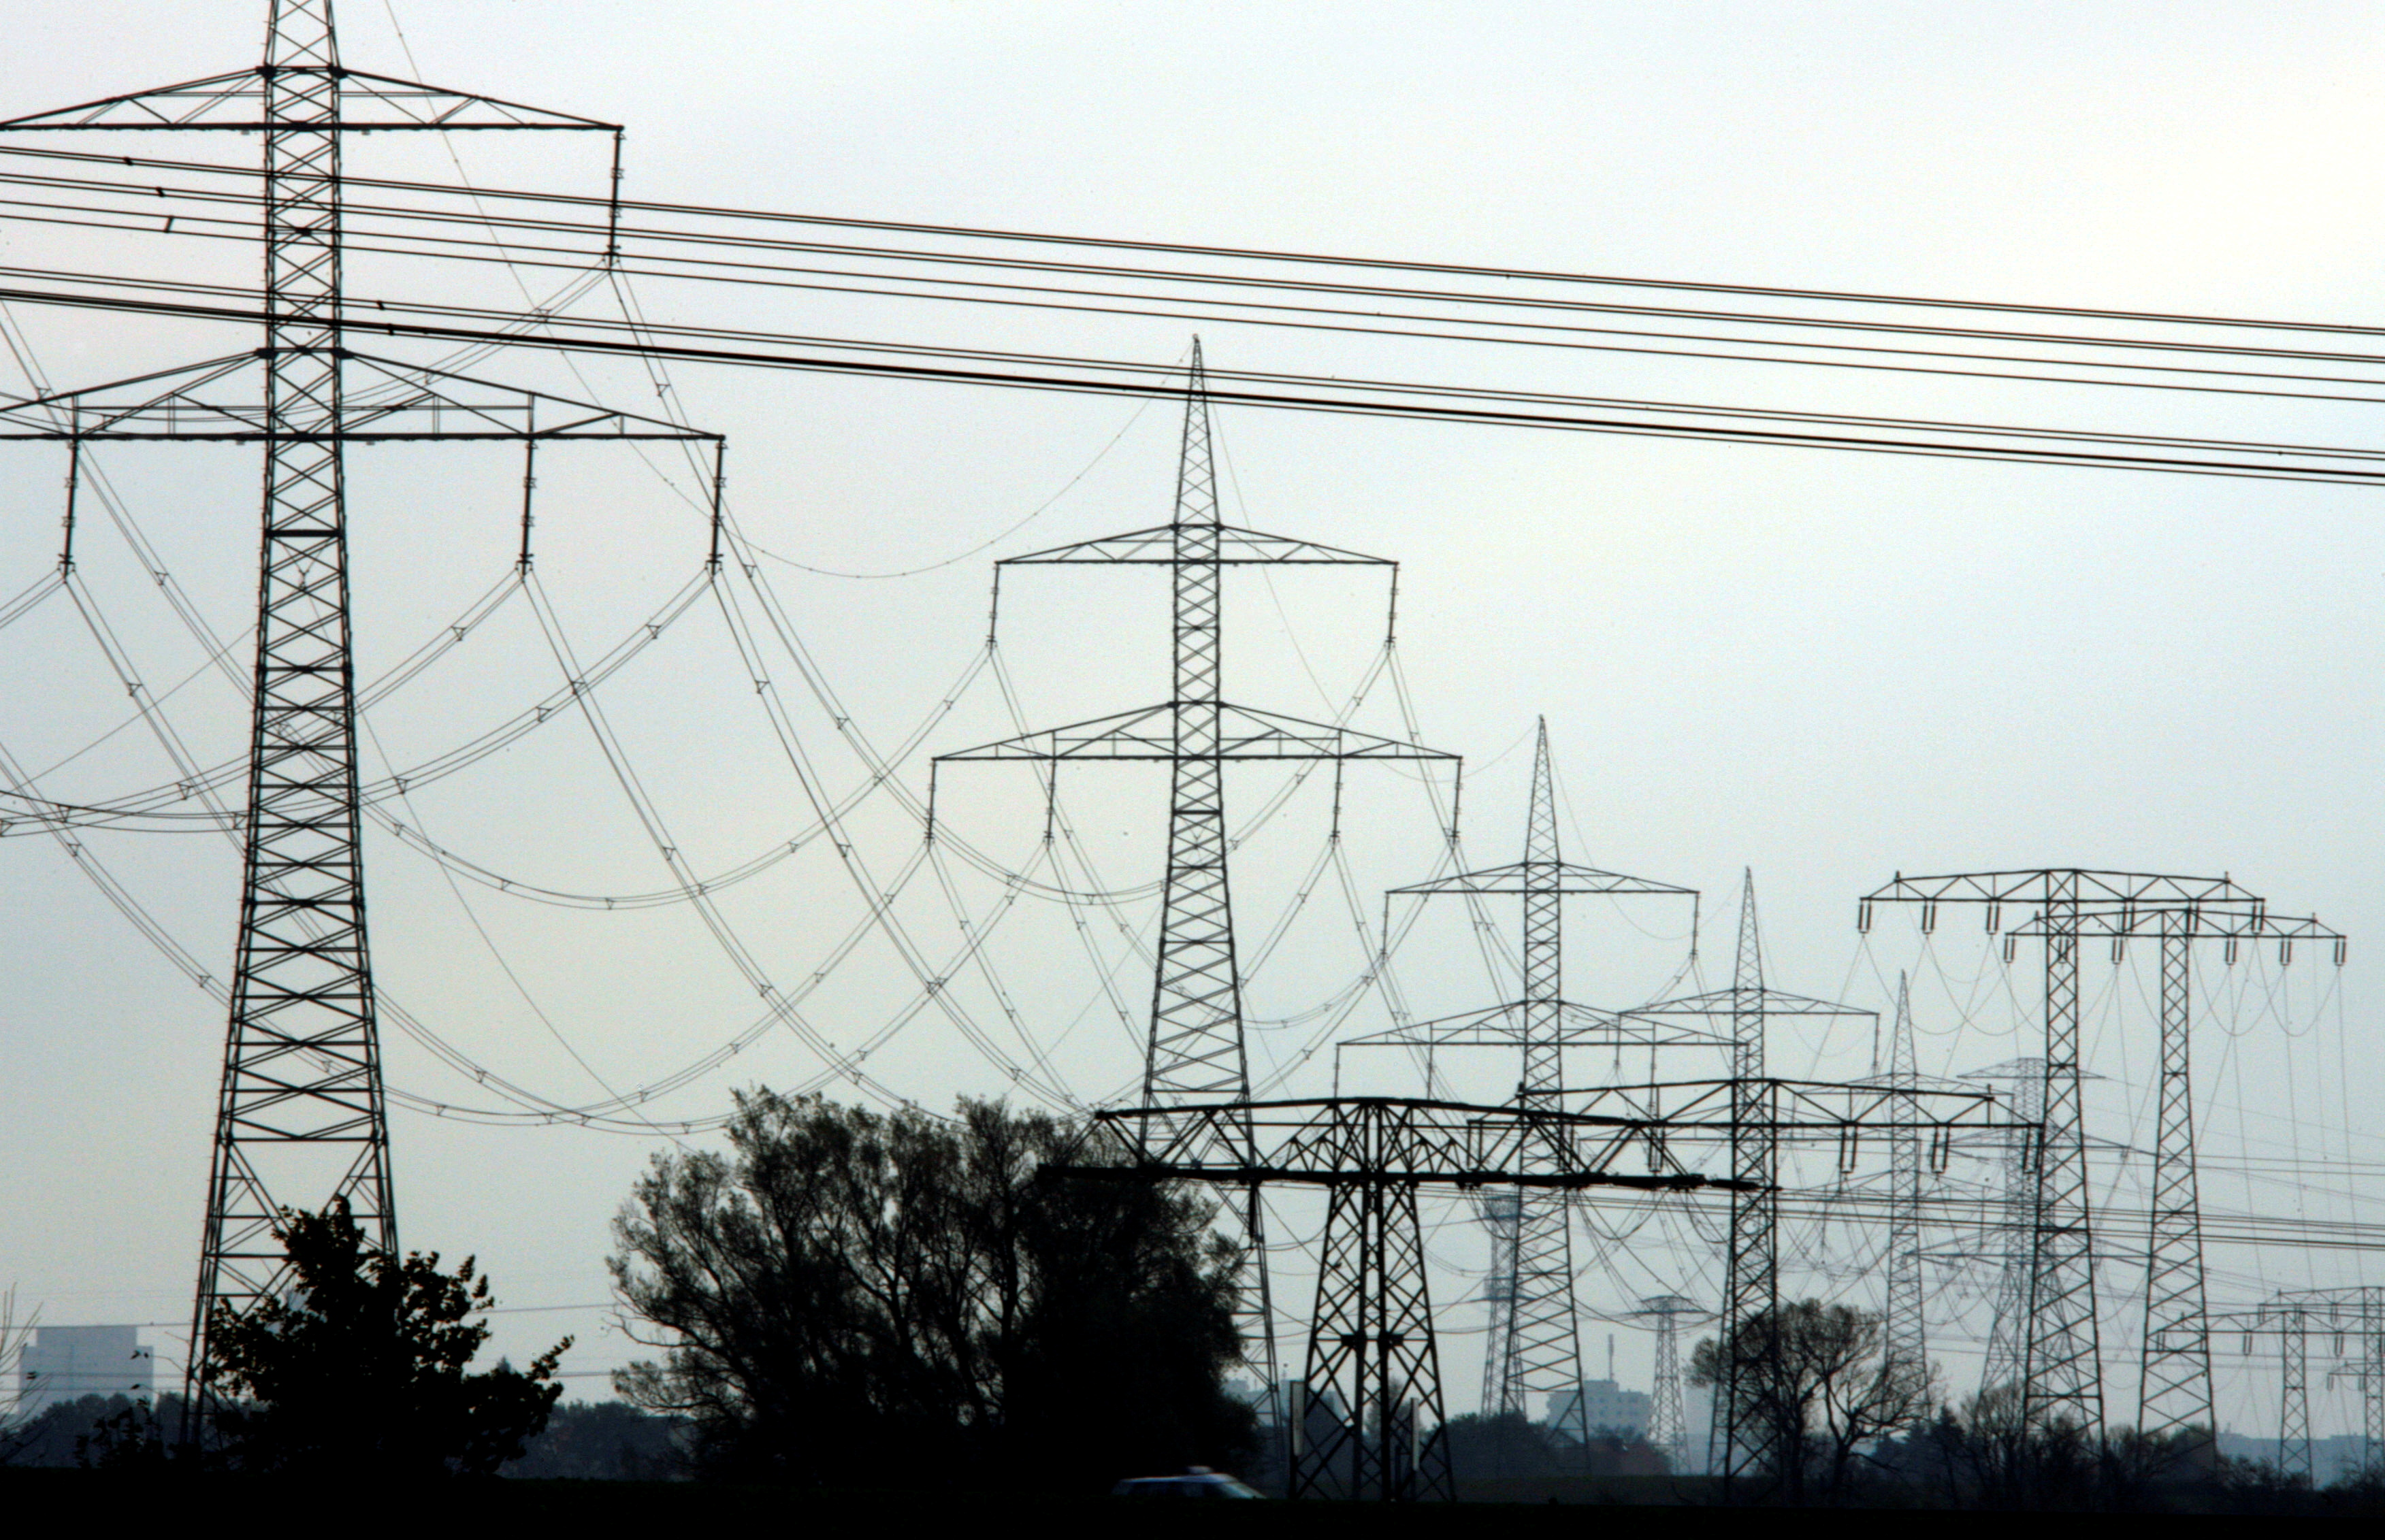 High-voltage power lines and electricity pylons pictured near Berlin, November 7, 2006. REUTERS/Pawel Kopczynski